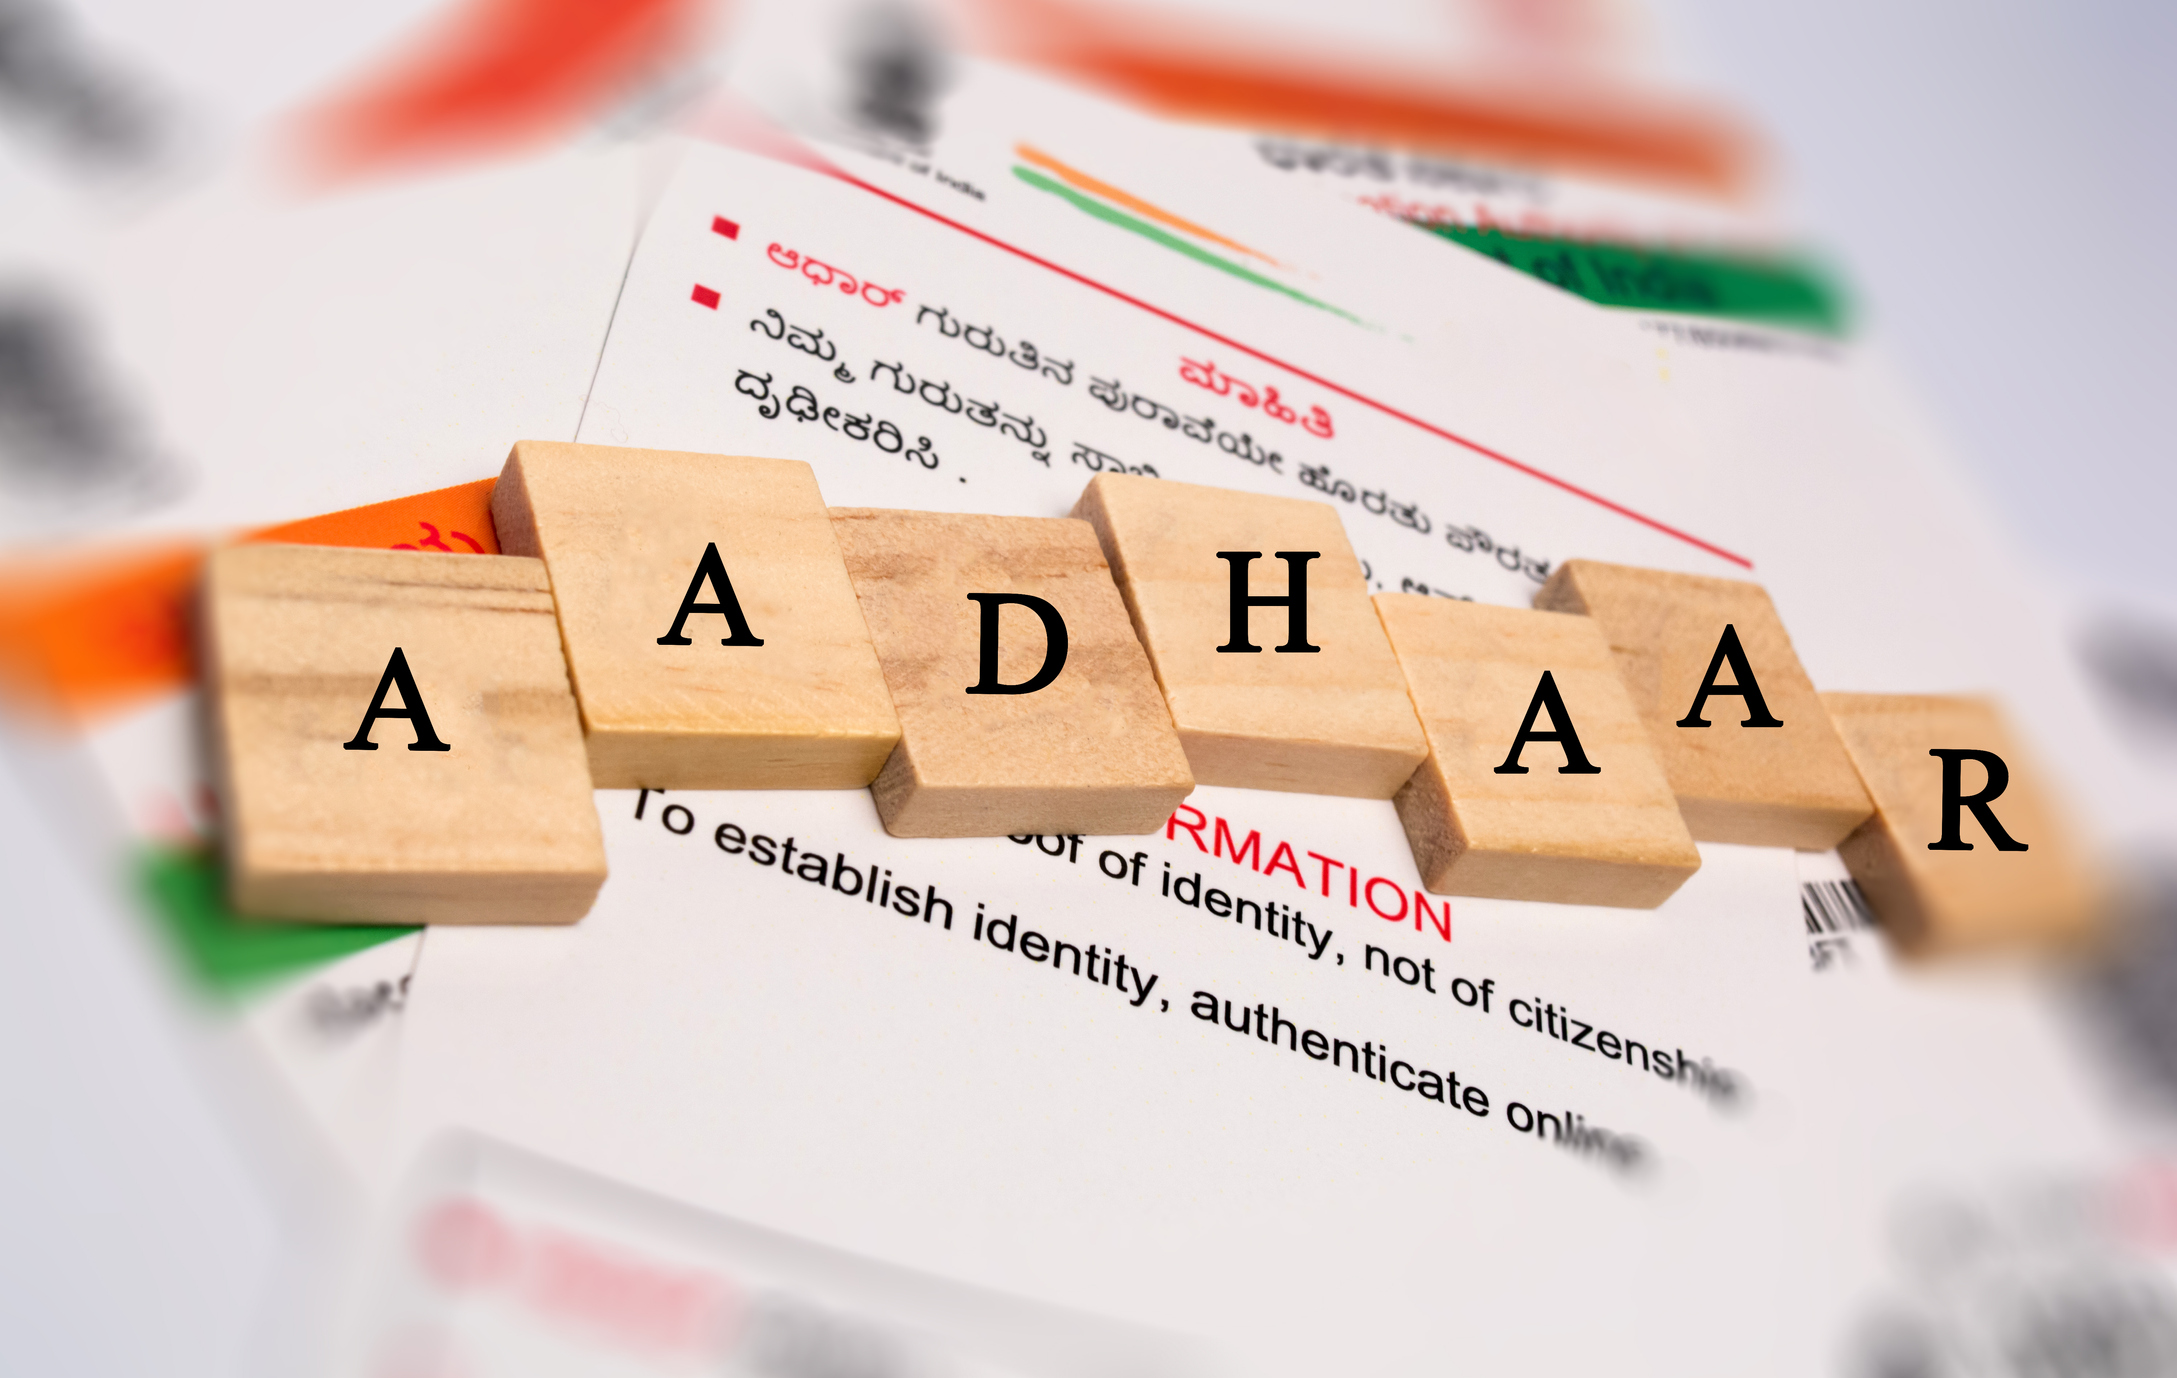 In the preliminary interview board online form, a candidate who does not fill his/her Aadhaar number cannot proceed to the next level as the form would remain incomplete.